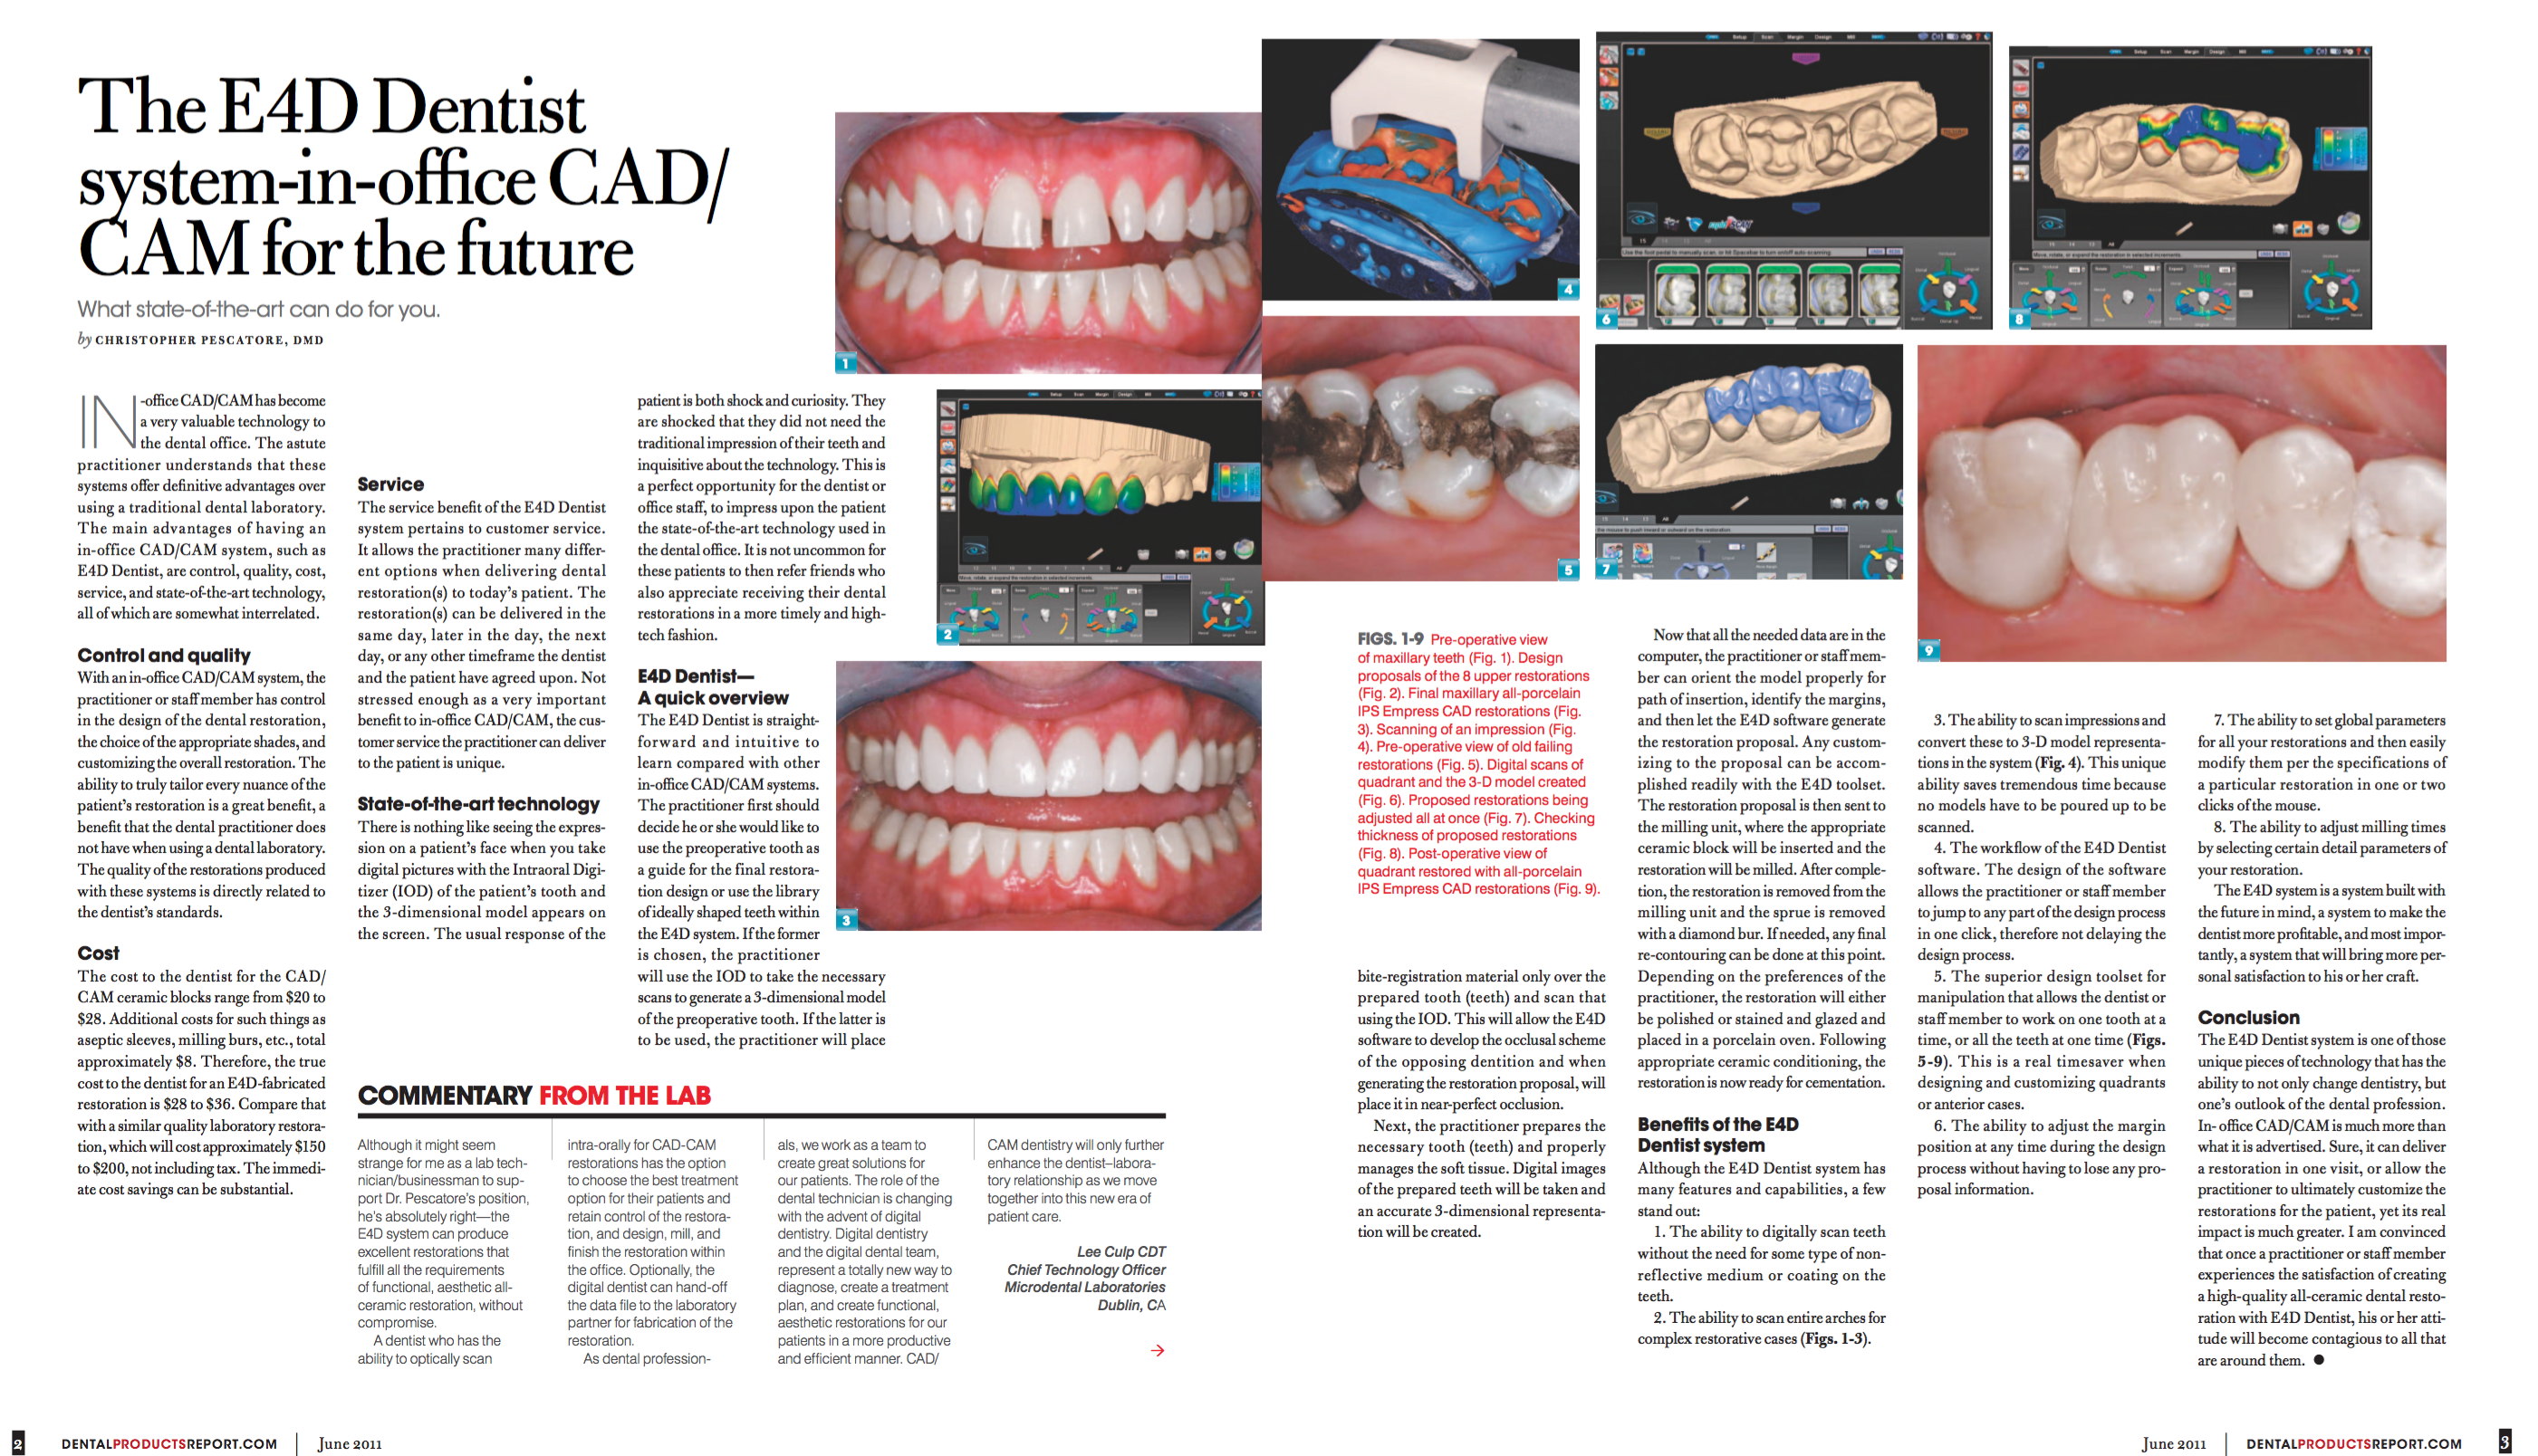 Dental Products Report Article by Dr. Pescatore